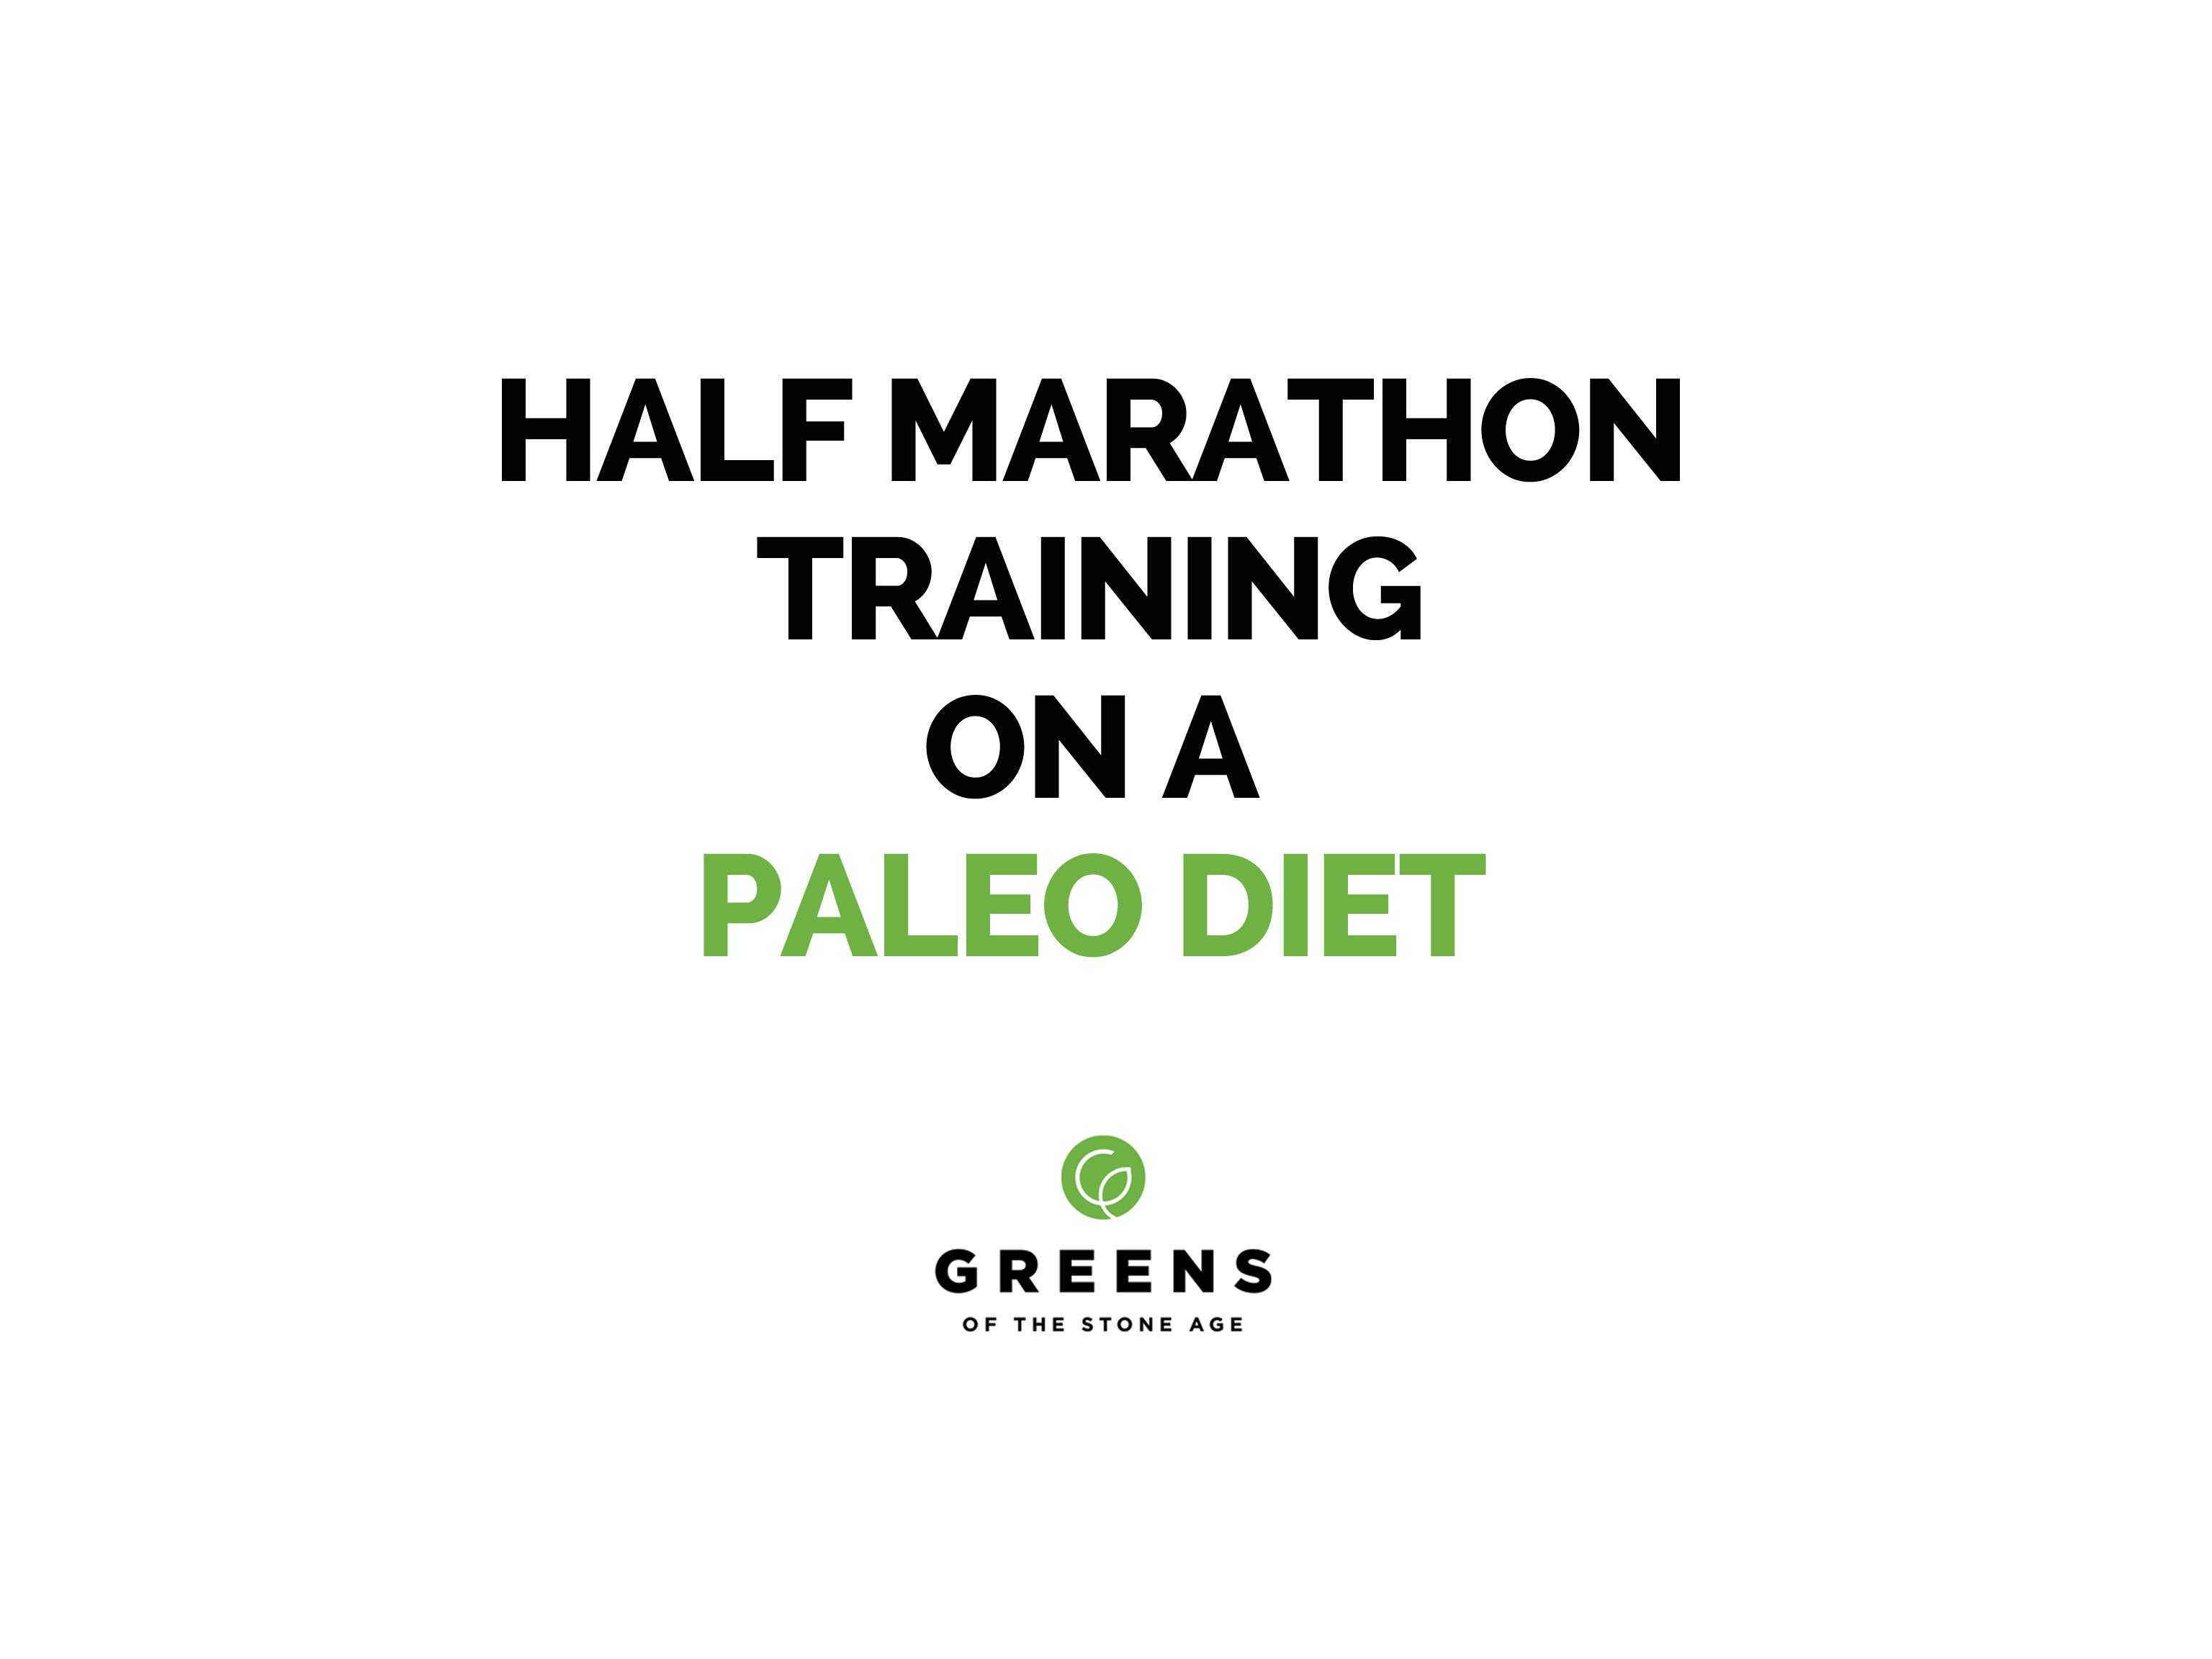 half-marathon-training-on-a-paleo-diet-part-1